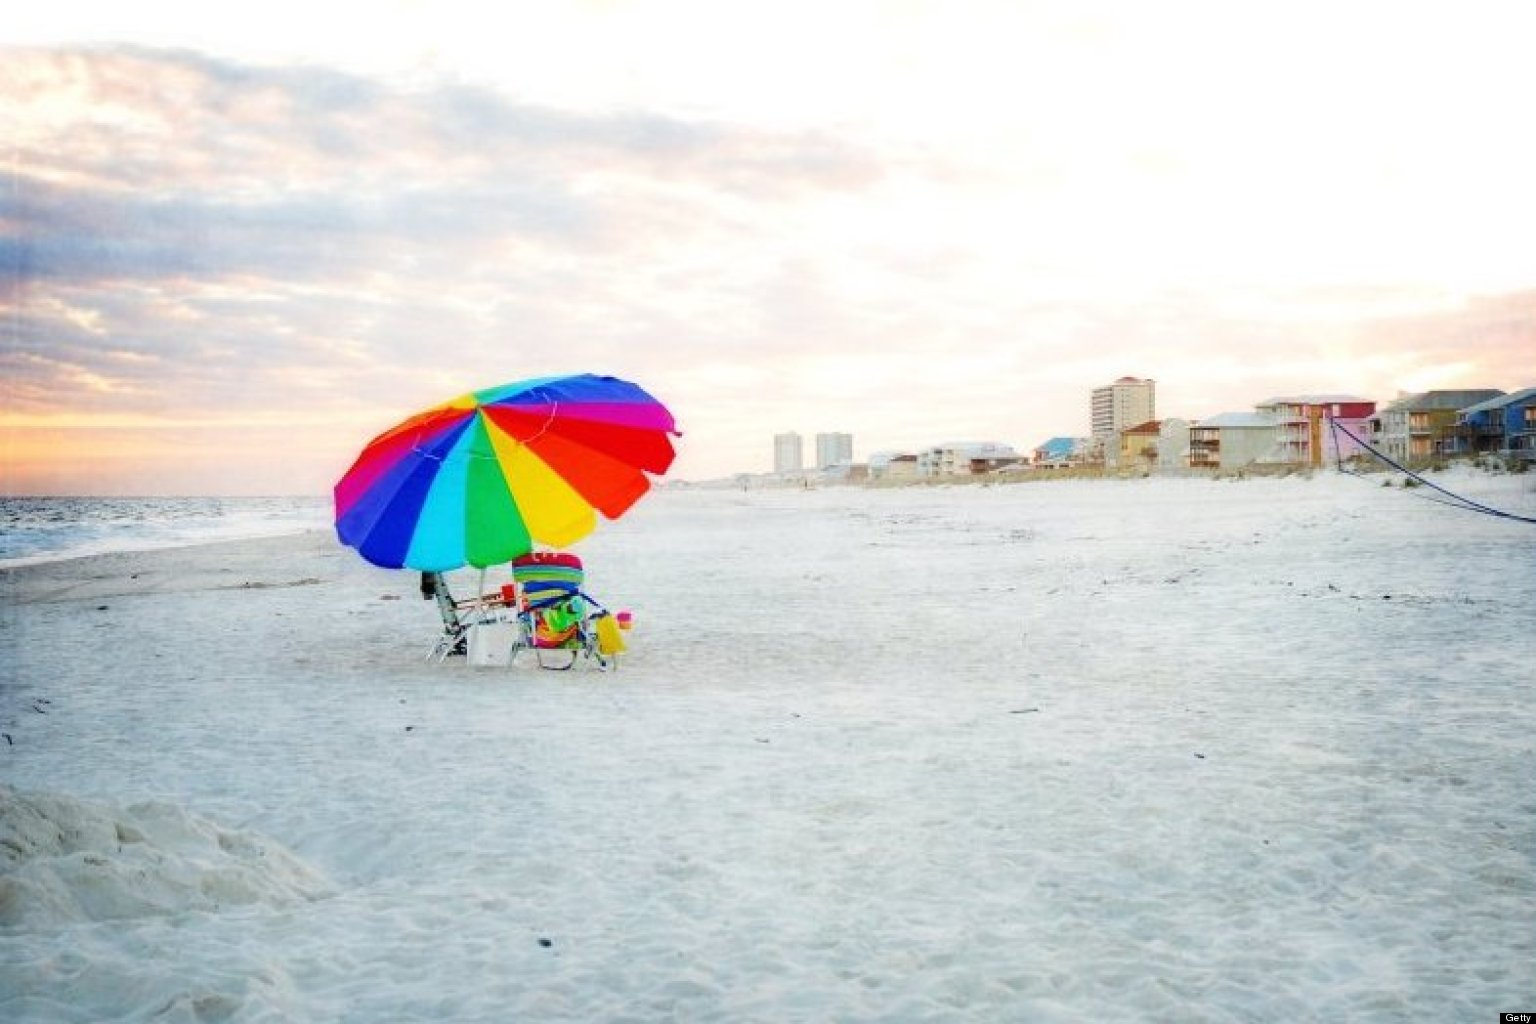 10 Best Beach Towns For Relaxing Family Vacations  According To Parents  Magazine  PHOTOS    HuffPost10 Best Beach Towns For Relaxing Family Vacations  According To  . Family Vacation Beach East Coast. Home Design Ideas